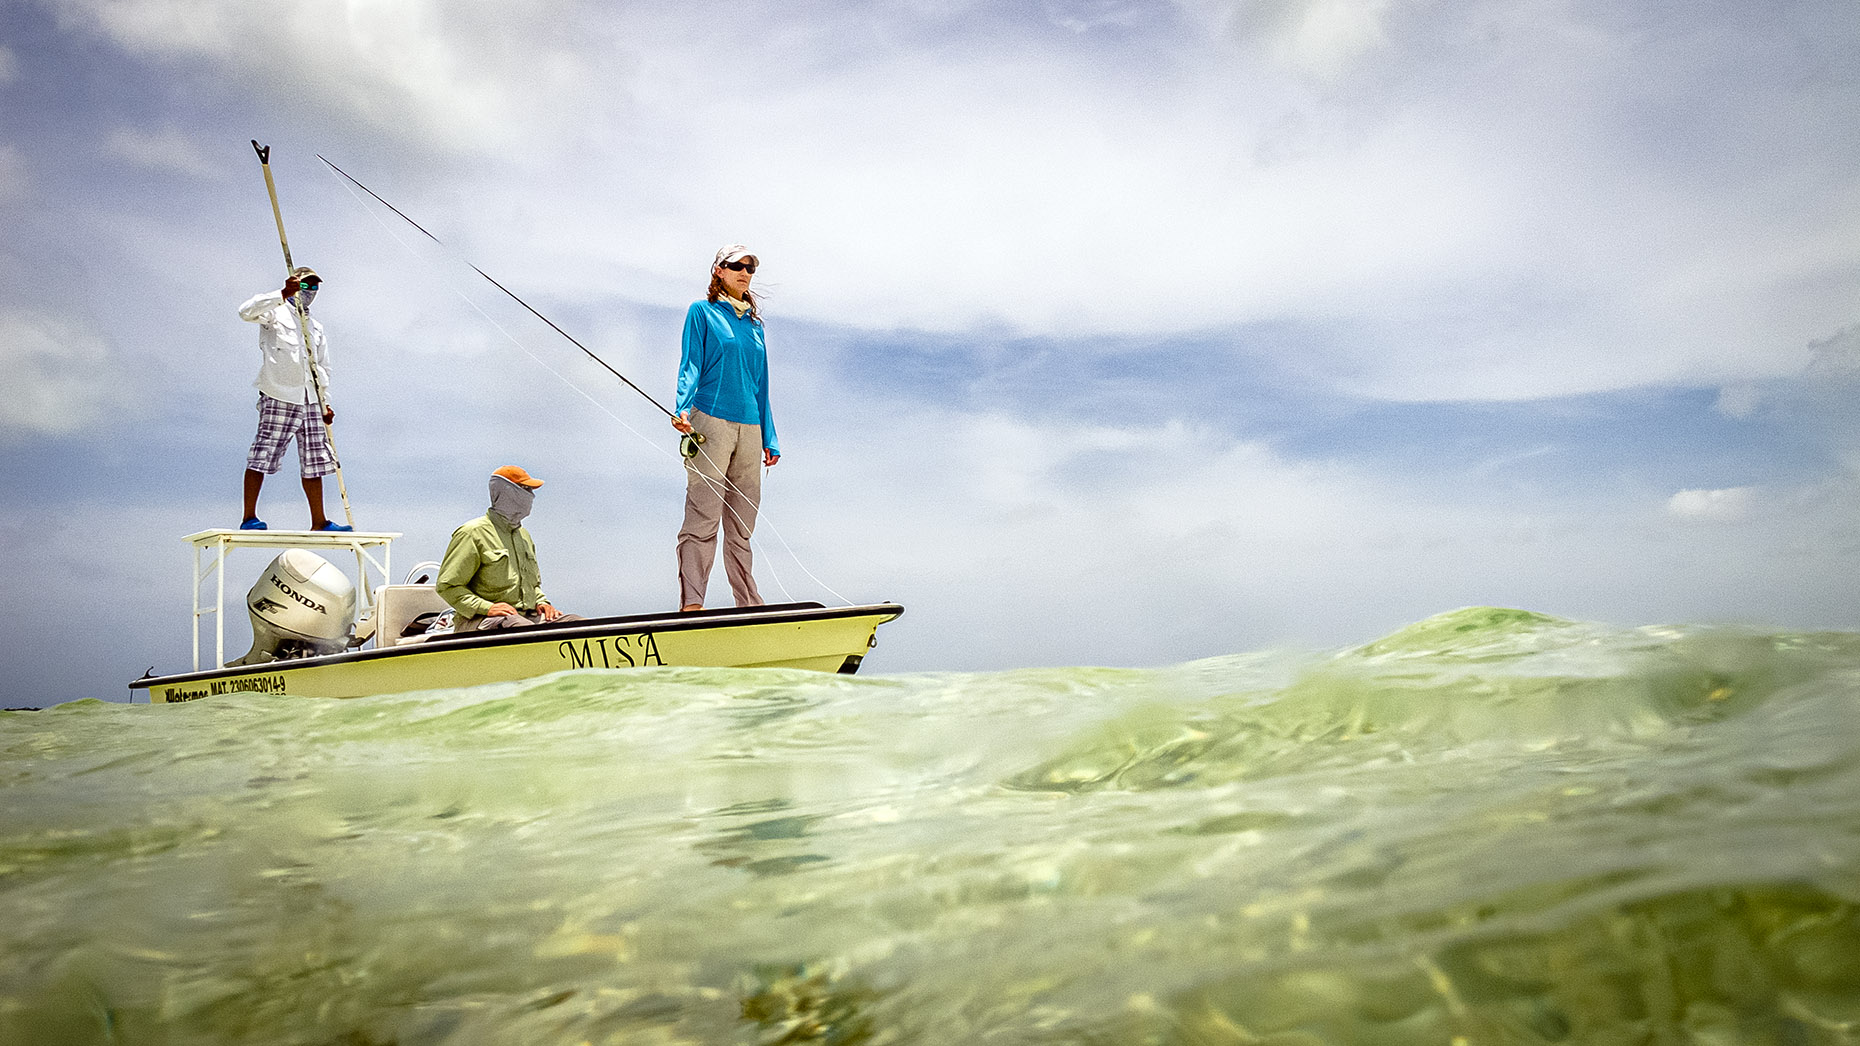 DAP sport fly fishing salt water Mexico Paradise Lodge